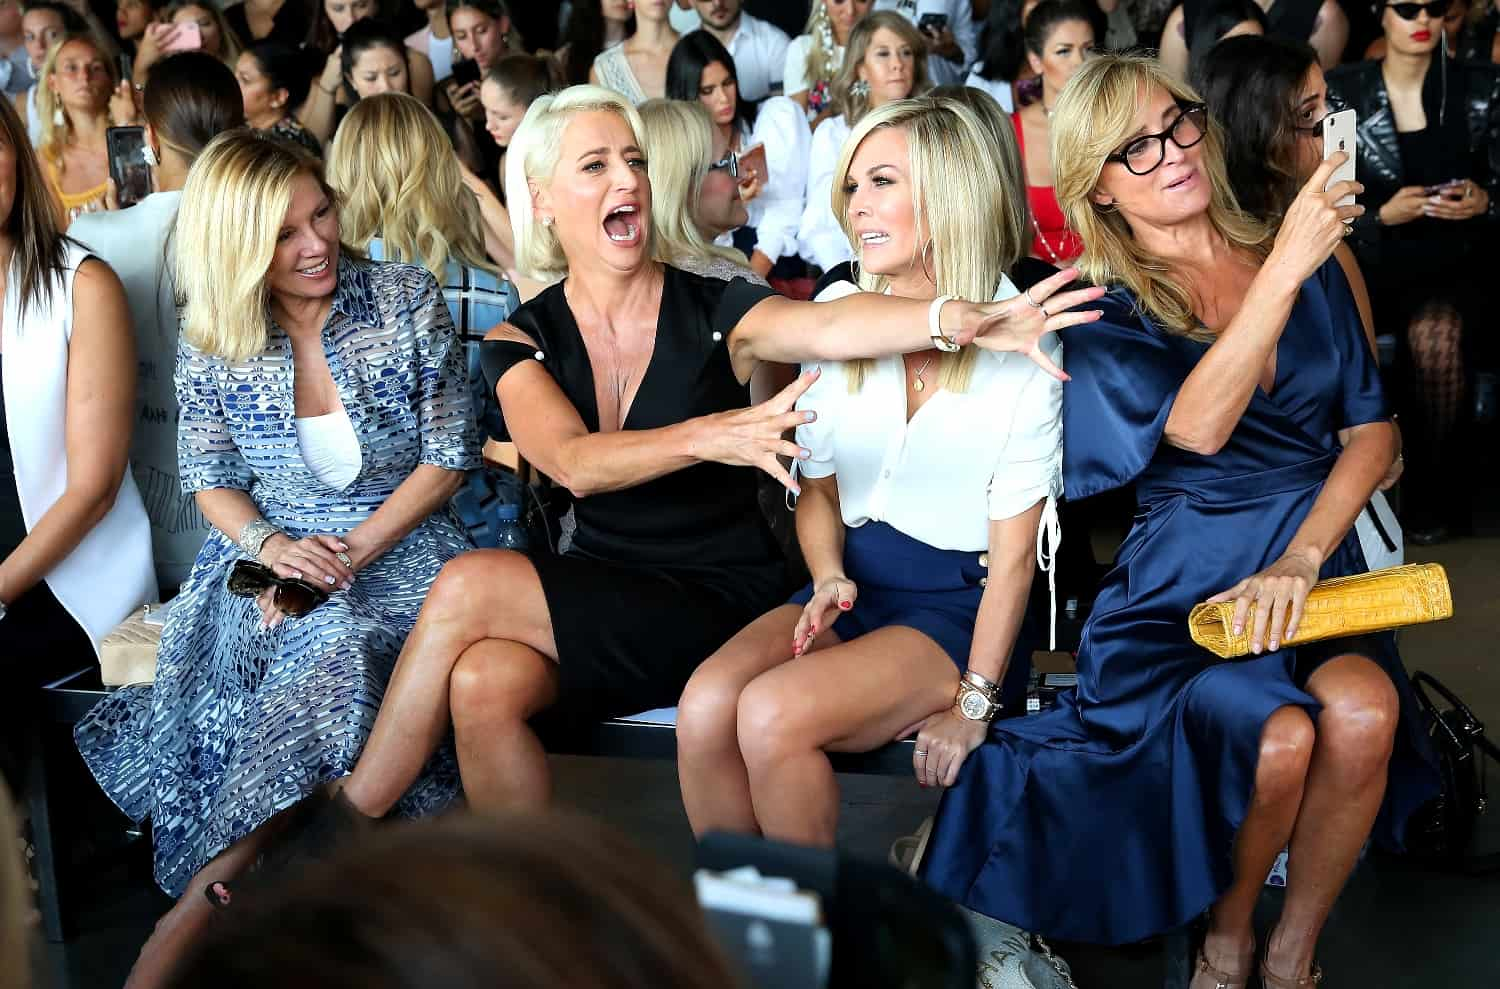 RHONY'S Ramona Singer, Dorinda Medley, Tinsley Mortimer and Sonja Morganrowdy at New York Fashion Week